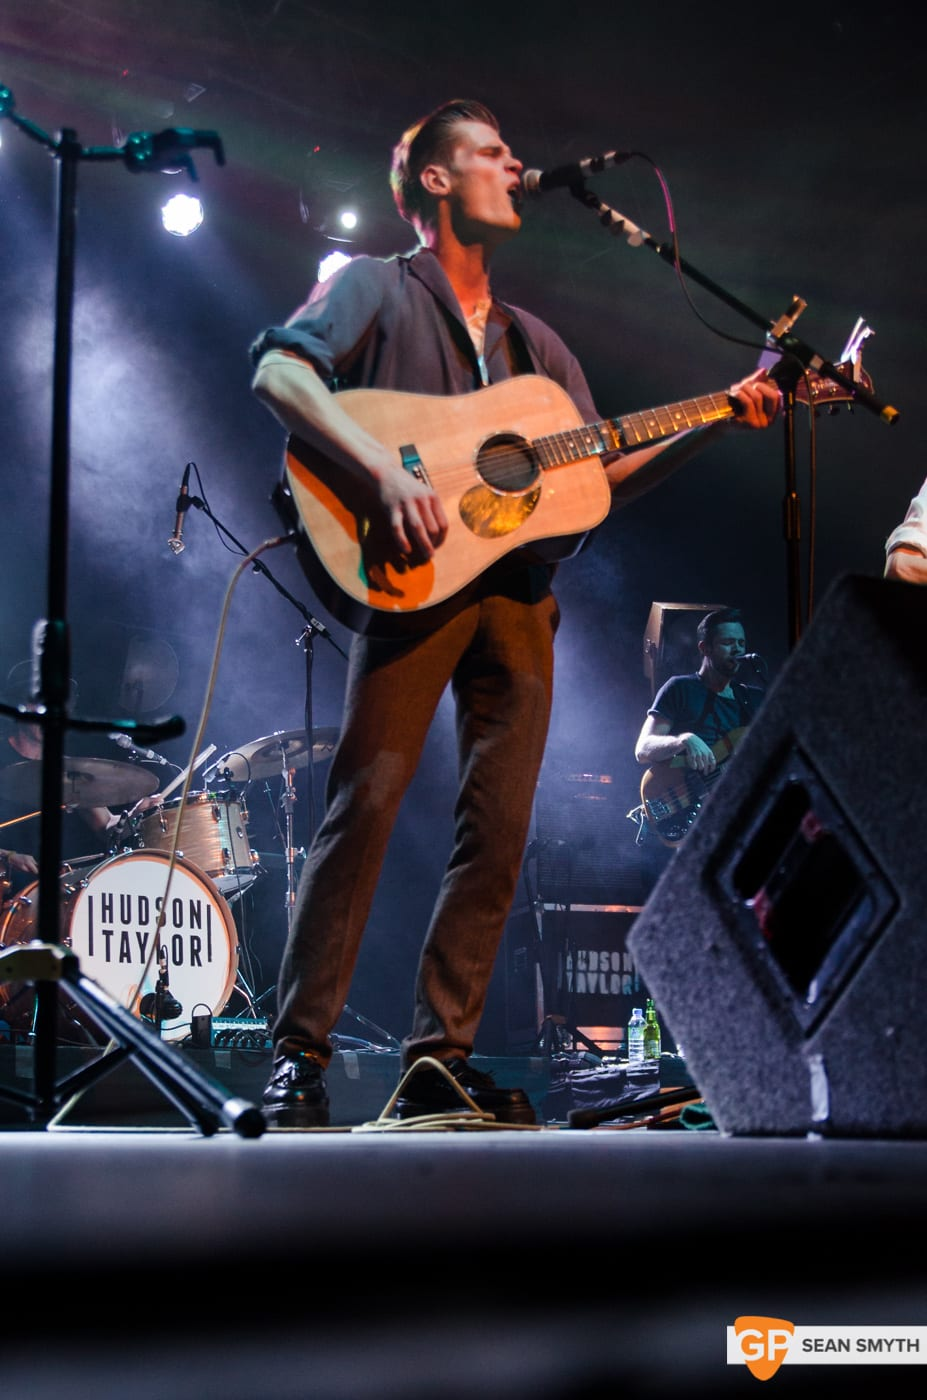 hudson-taylor-at-the-olympia-theatre-26-2-15-by-sean-smyth-14-of-26_16755588181_o